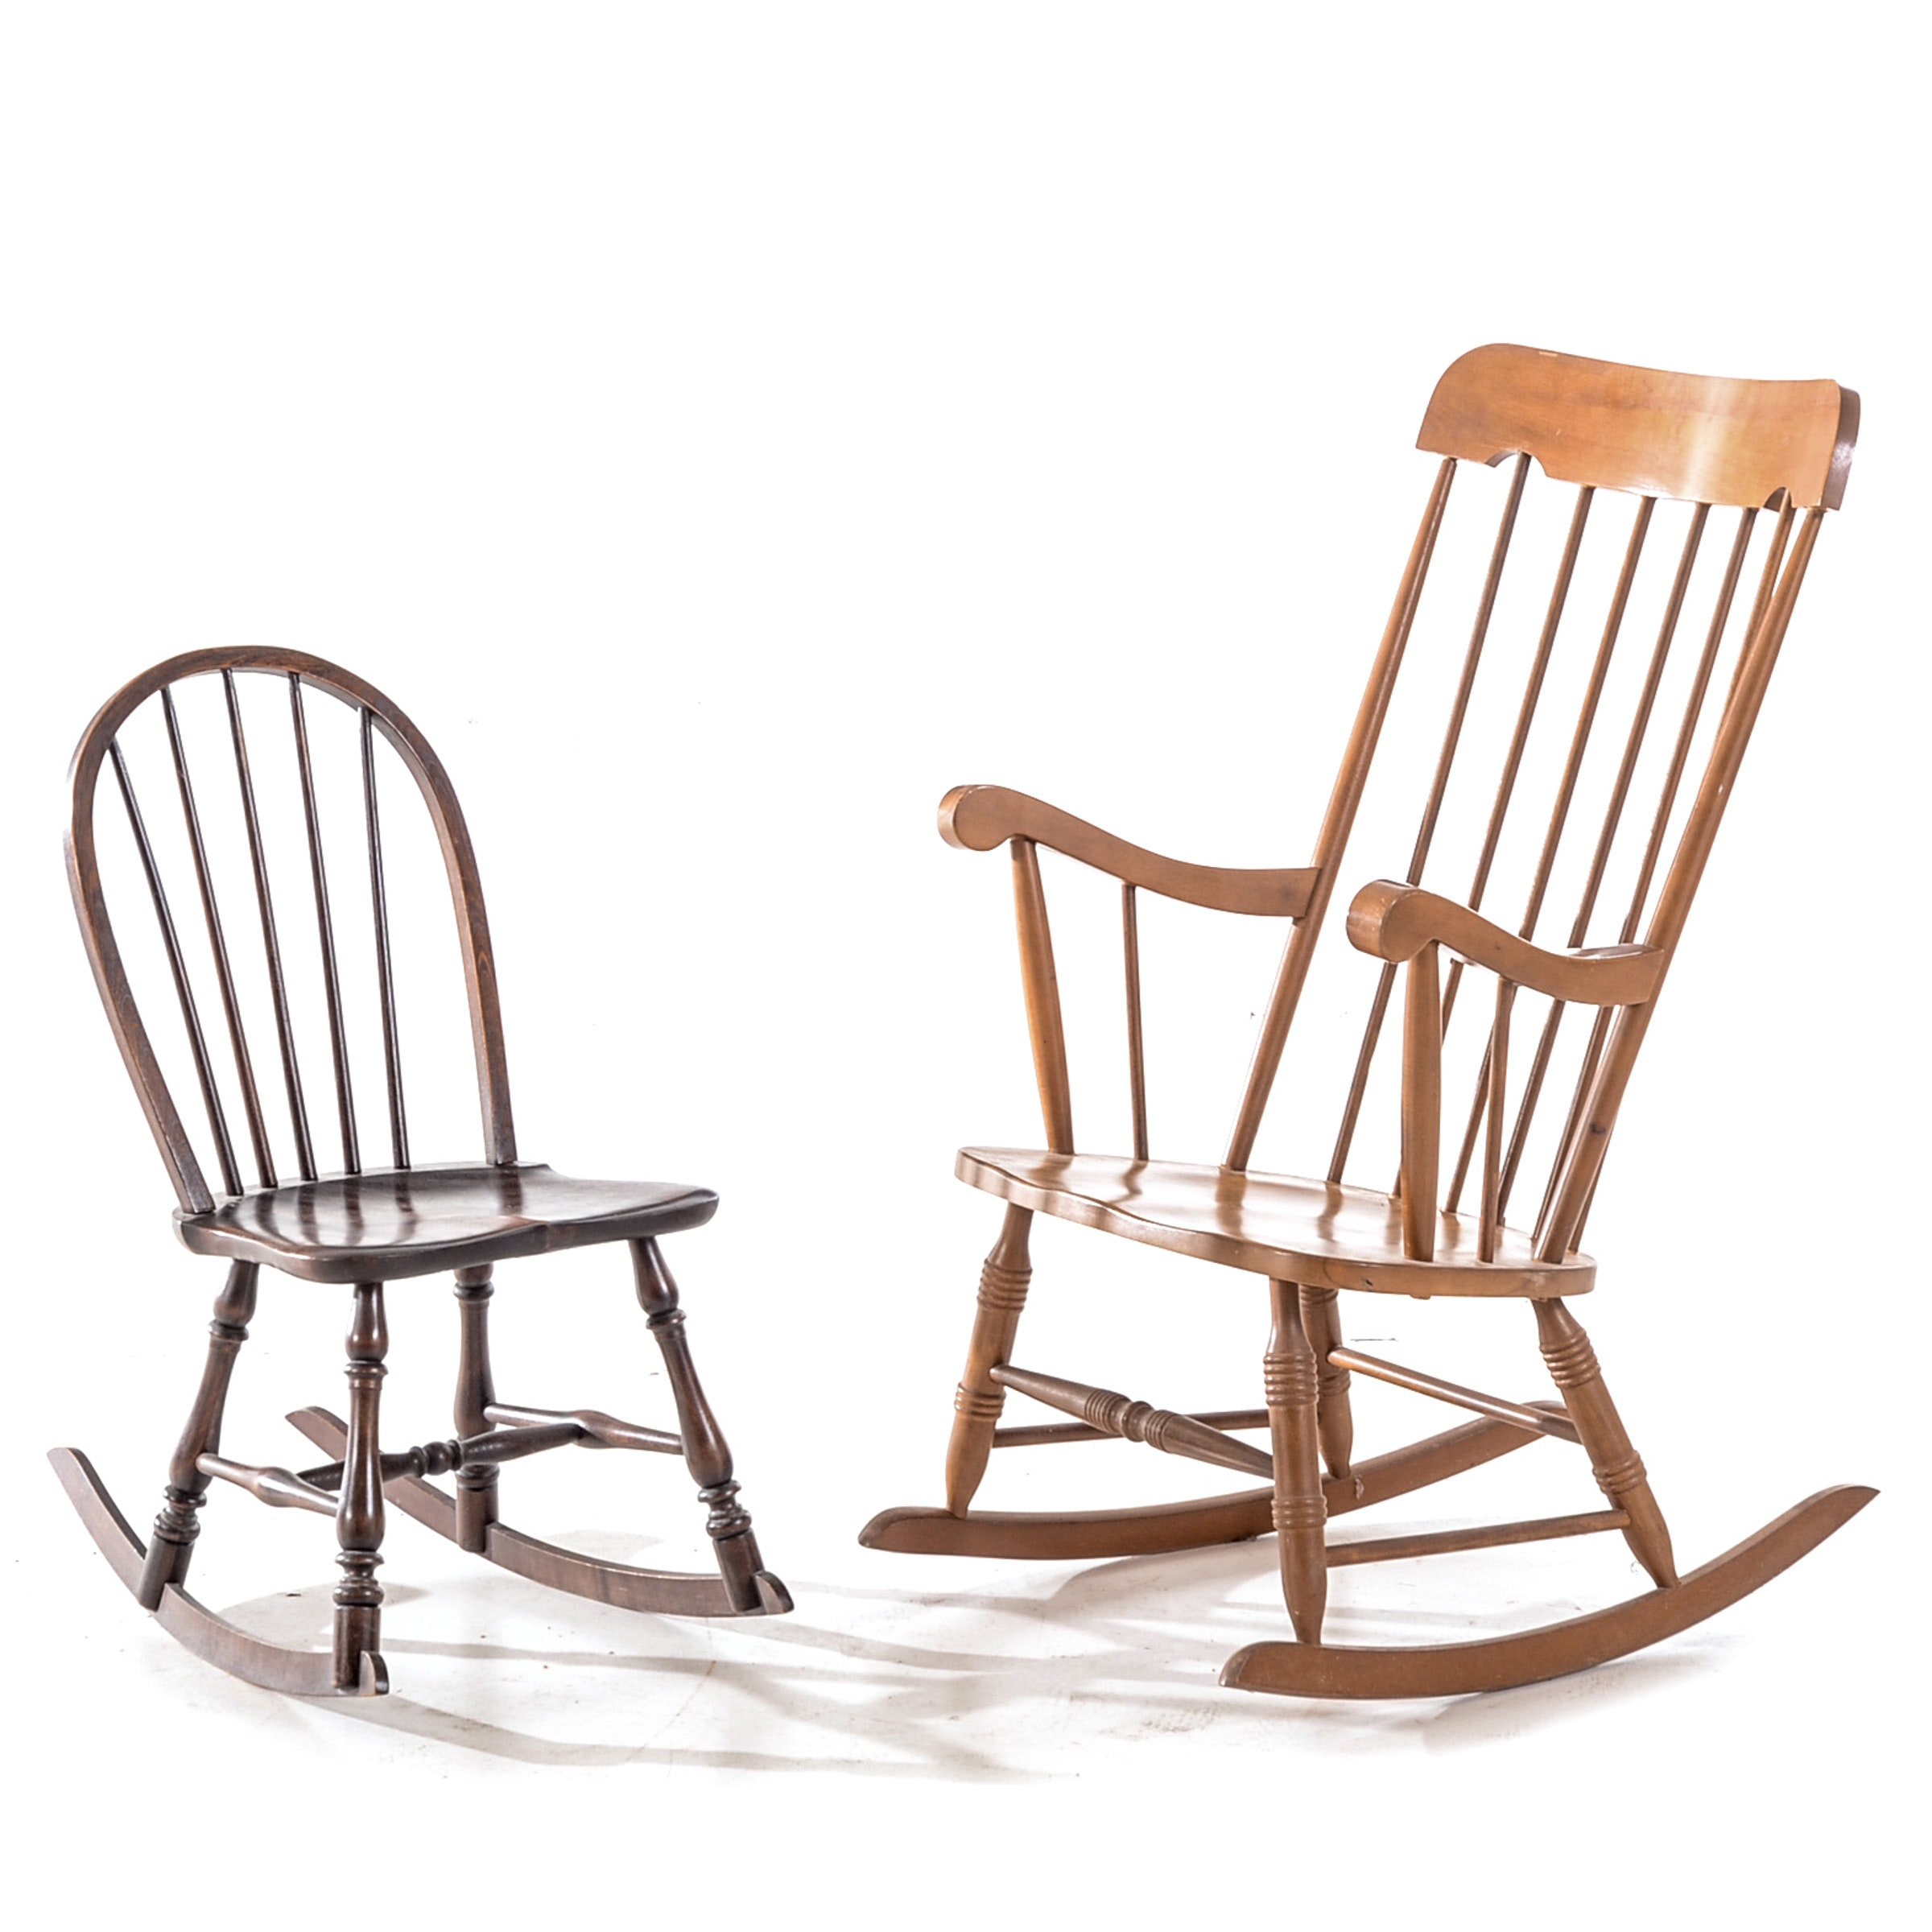 Two Vintage Rocking Chairs